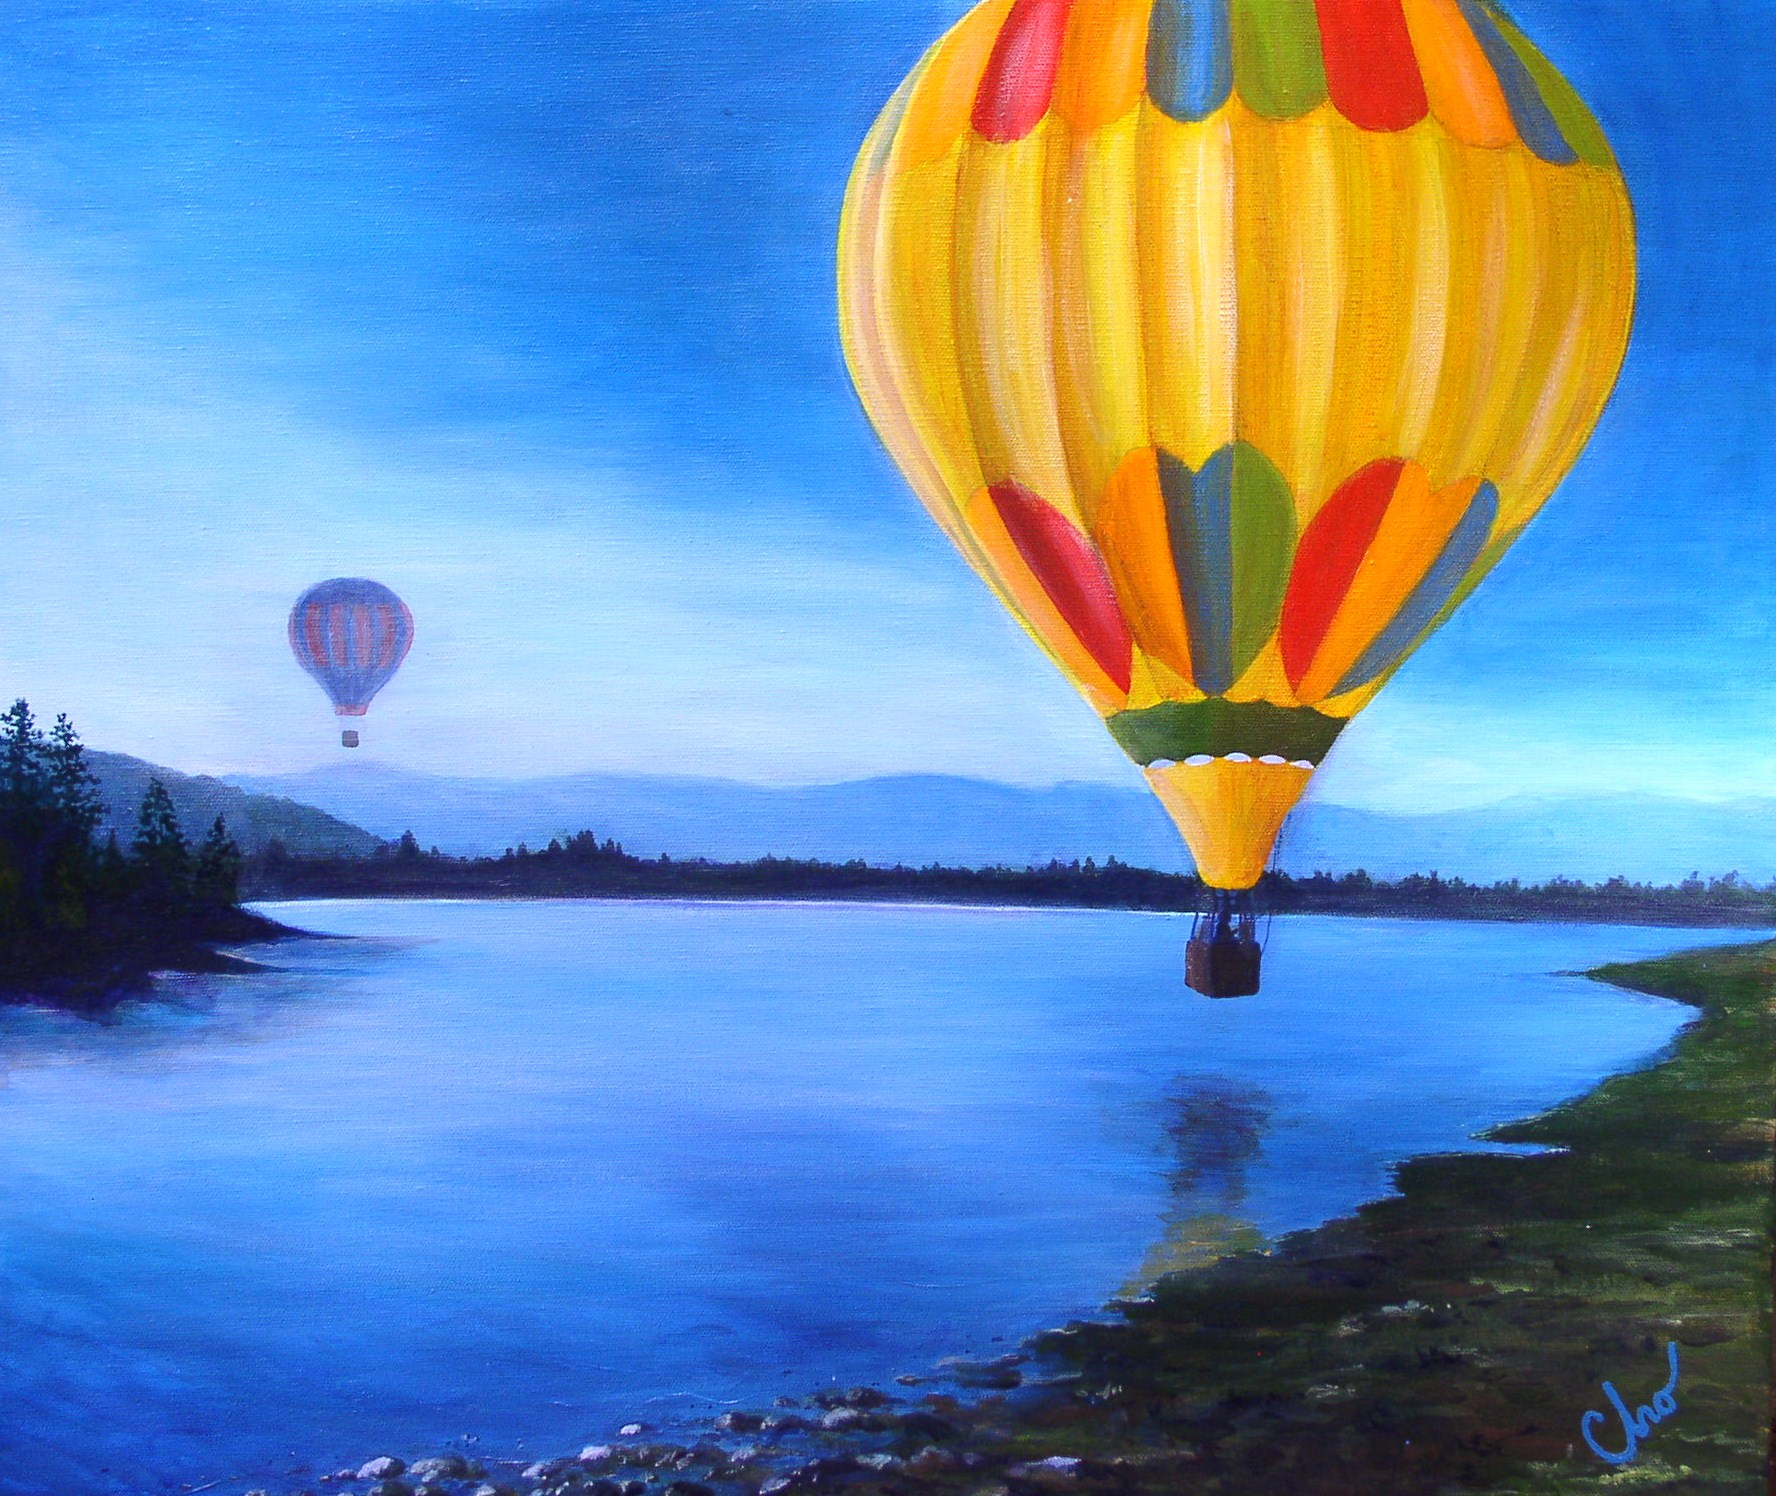 Balloons at Prosser Lake CA  22x24  Aug 2010 003 - Copy - Copy.JPG